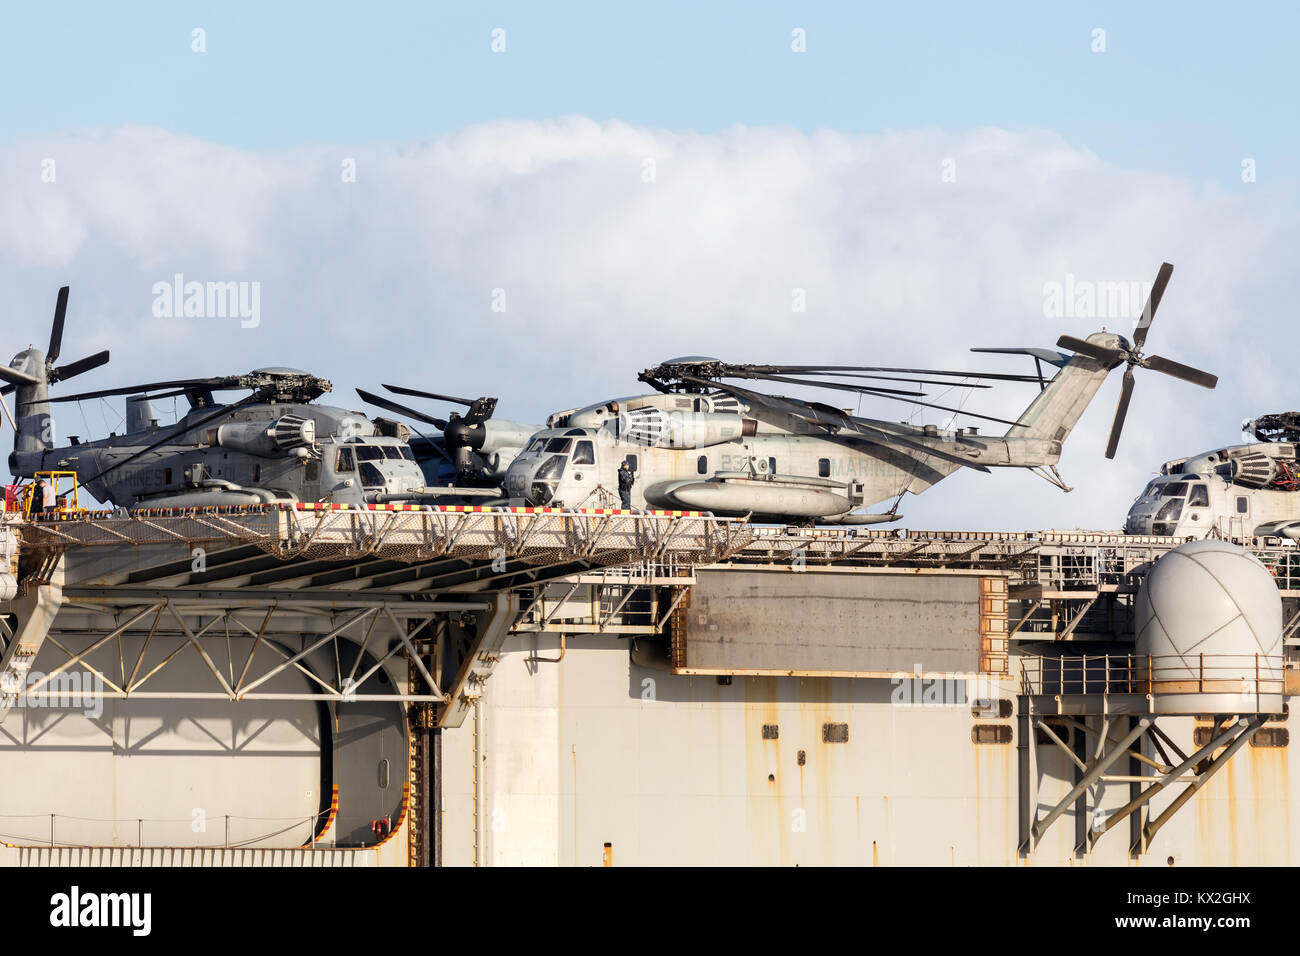 Sikorsky CH-53 heavy lift transport helicopters from the United States Marine Corps (Marine Expeditionary Unit - Stock Image